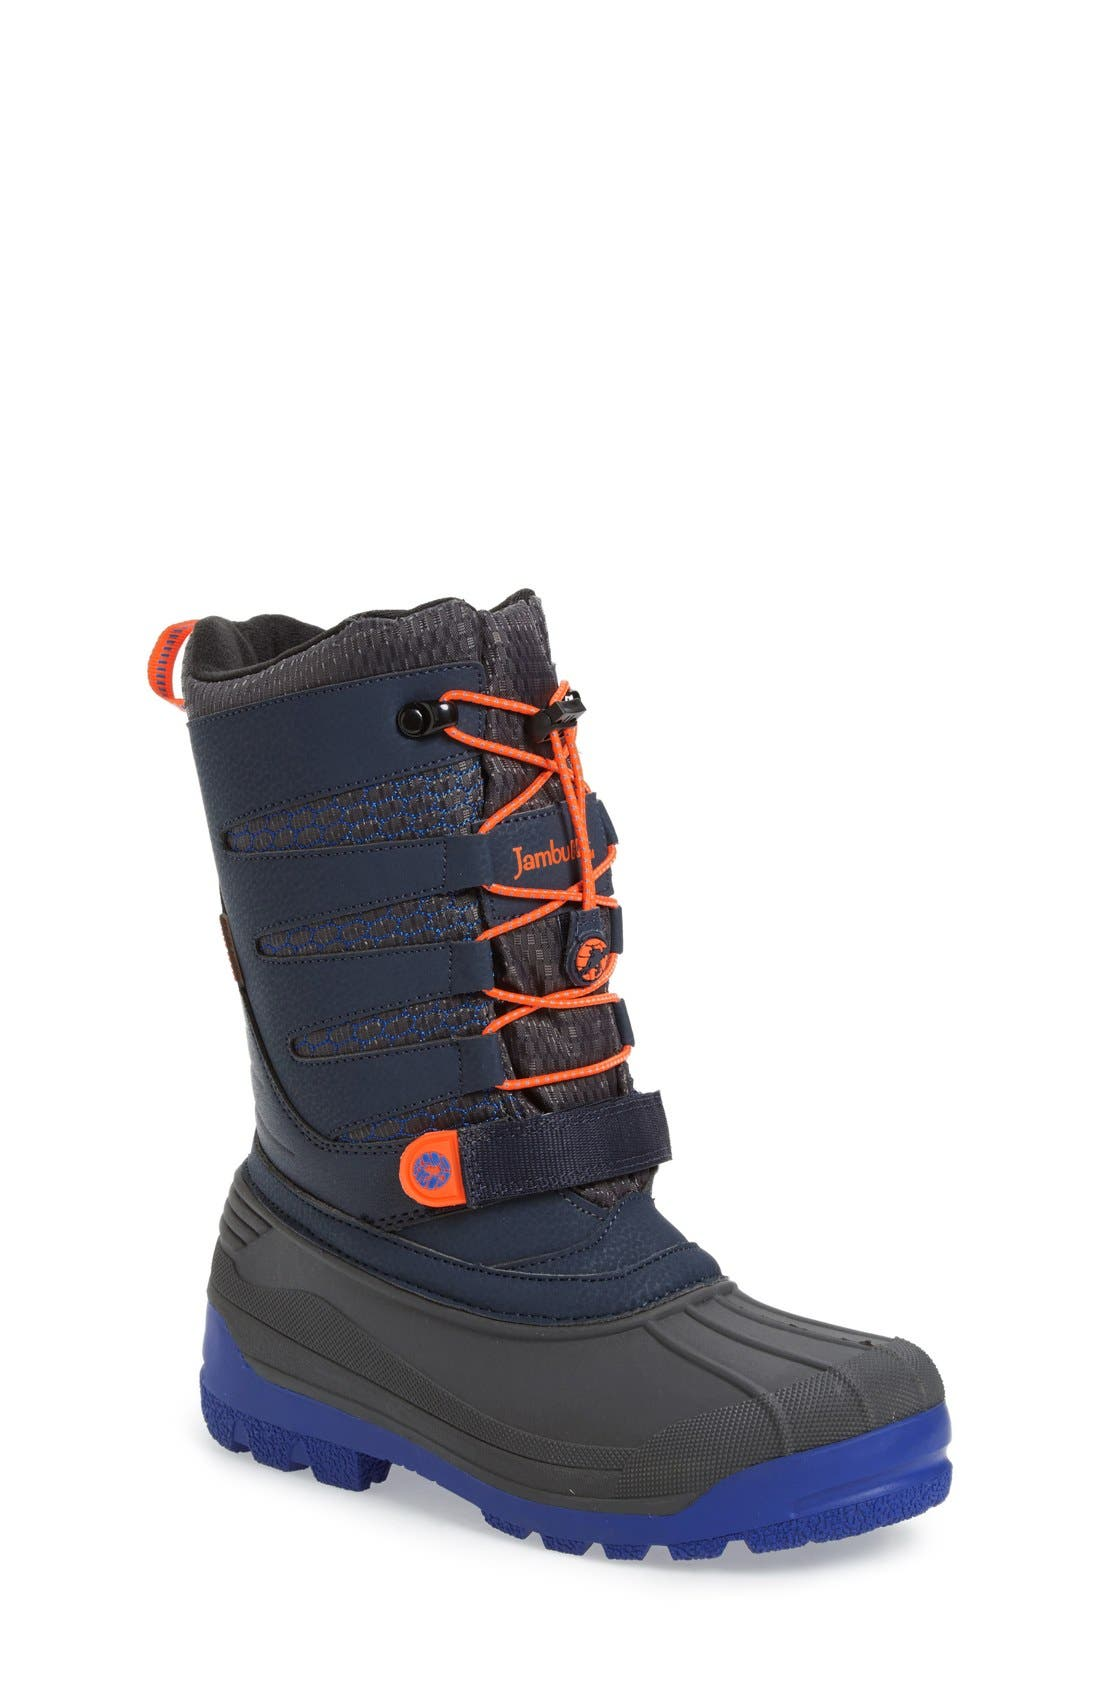 'Venom' Waterproof Insulated Snow Boot,                             Main thumbnail 1, color,                             467